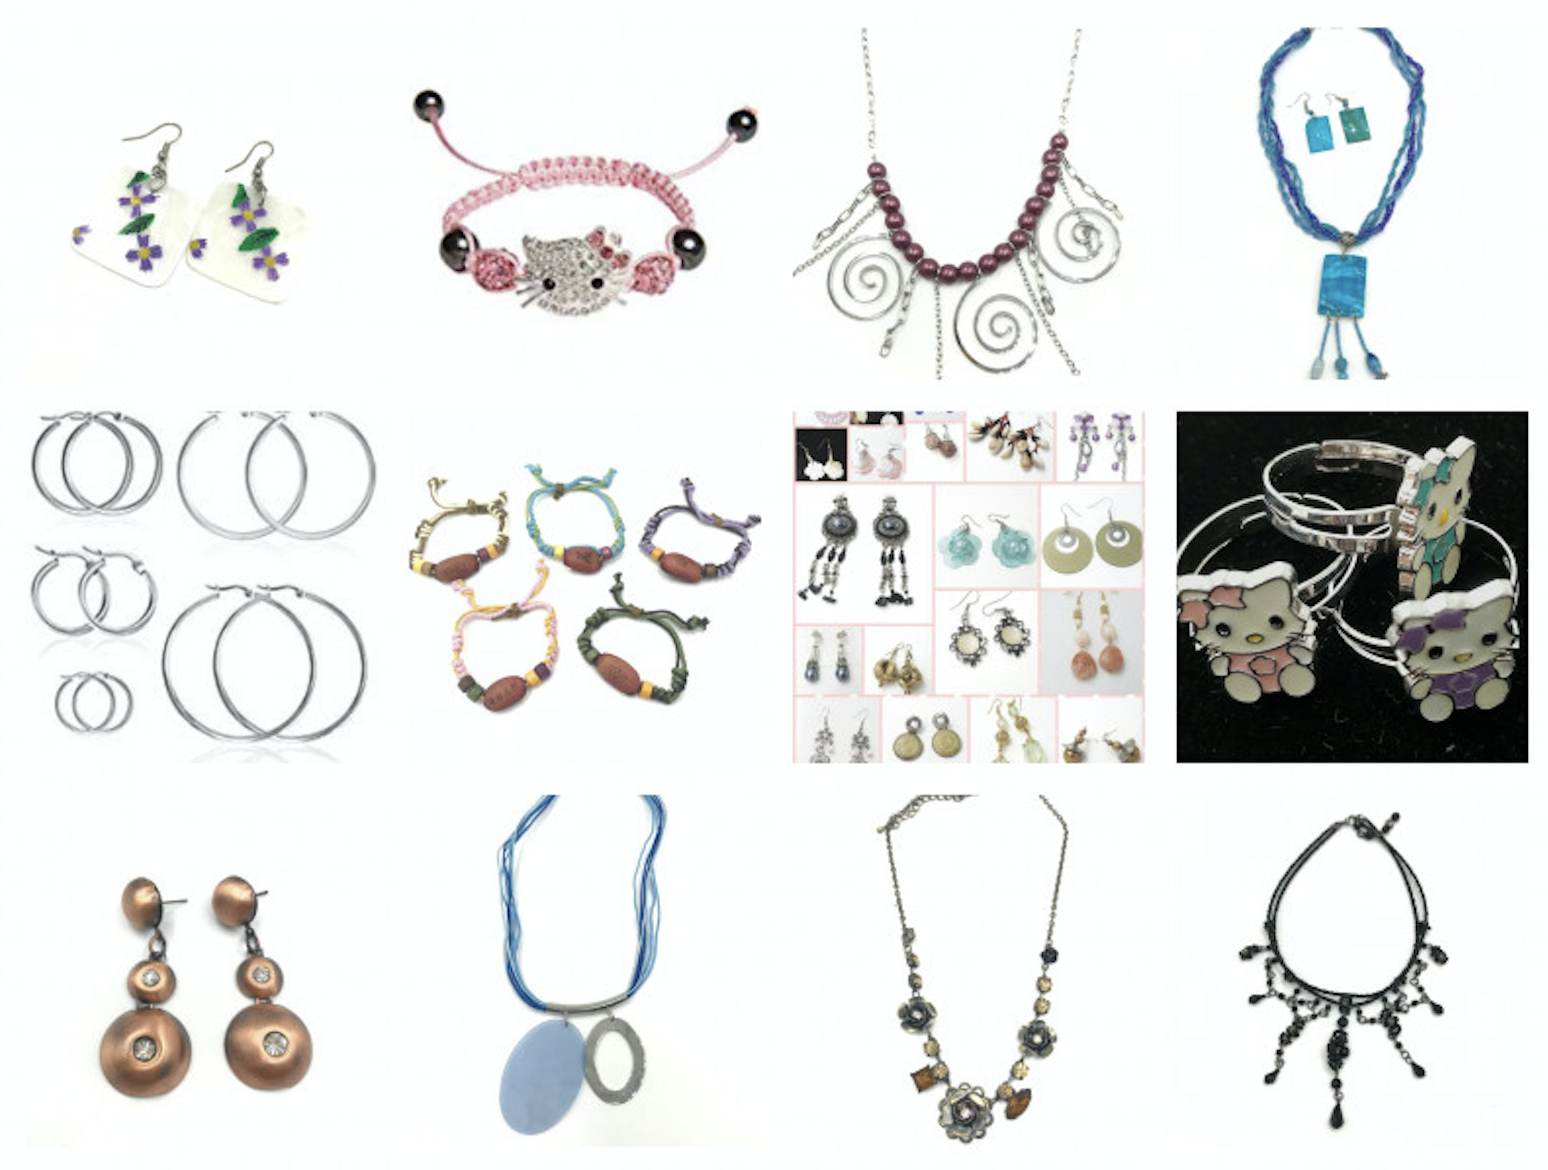 37481 - Jewelery and accessories Europe